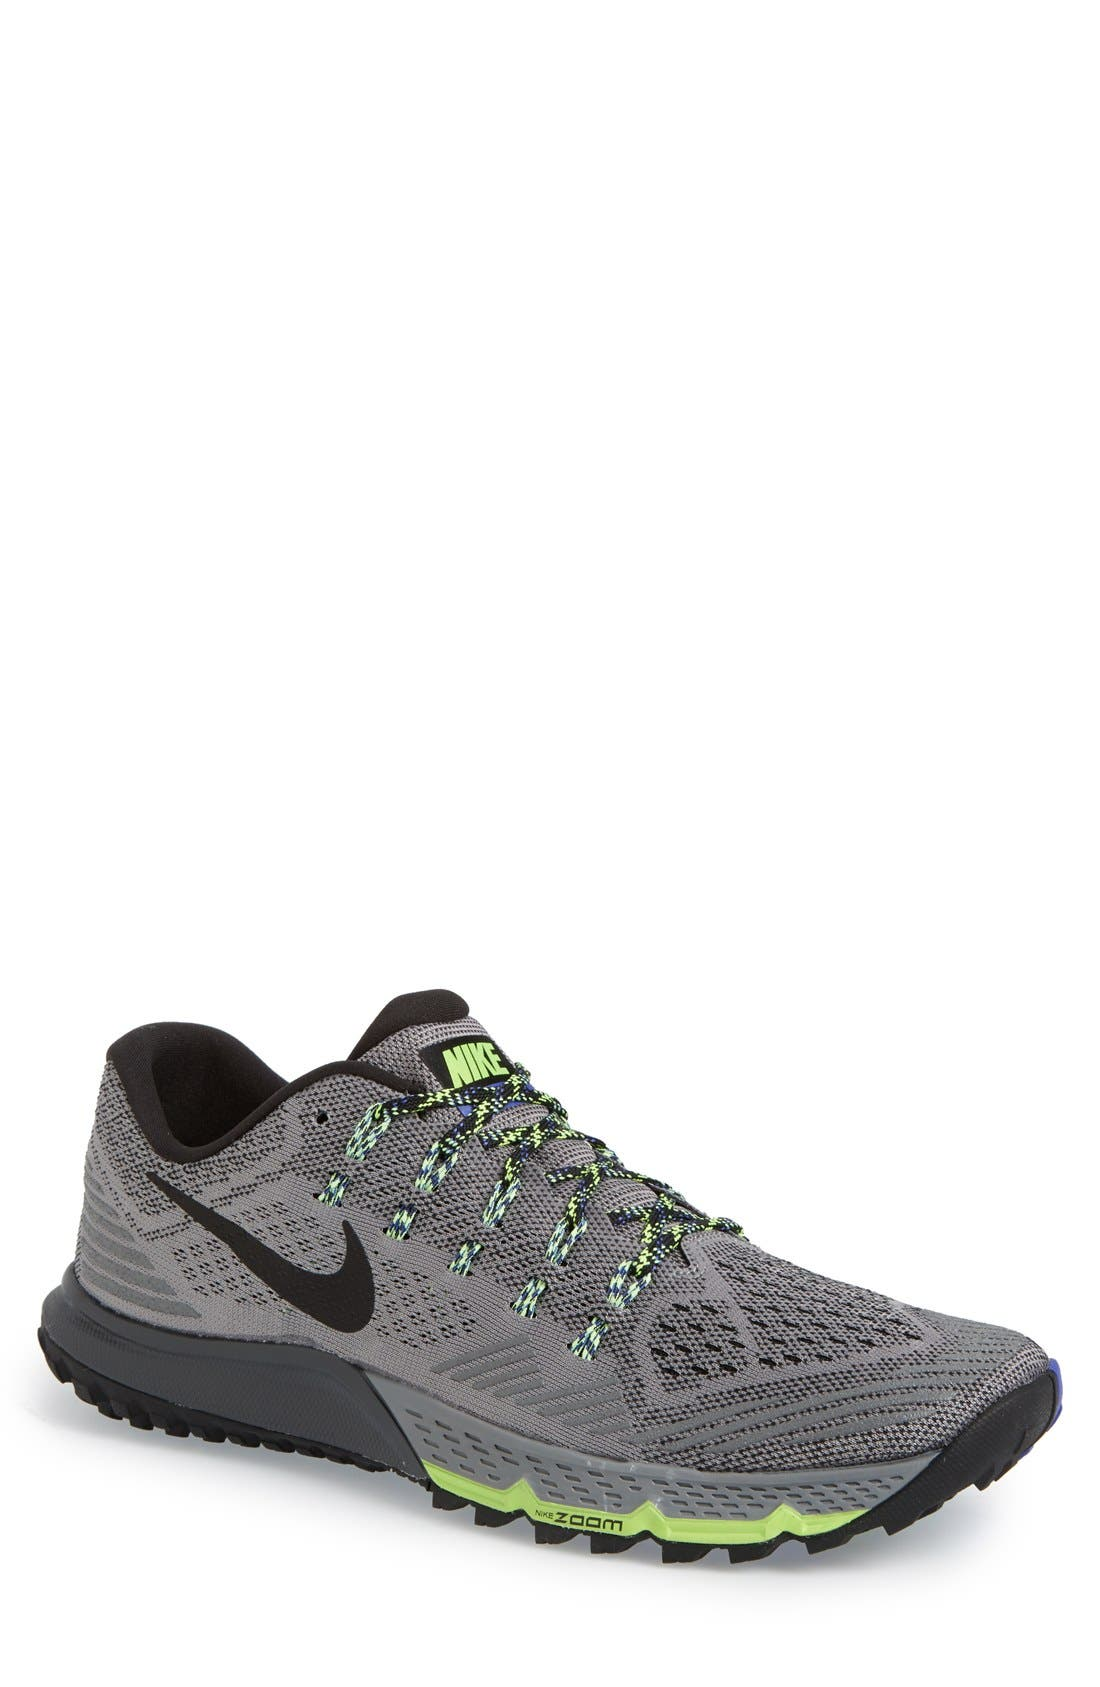 'Zoom Terra Kiger 3' Trail Running Shoe, Main, color, 081